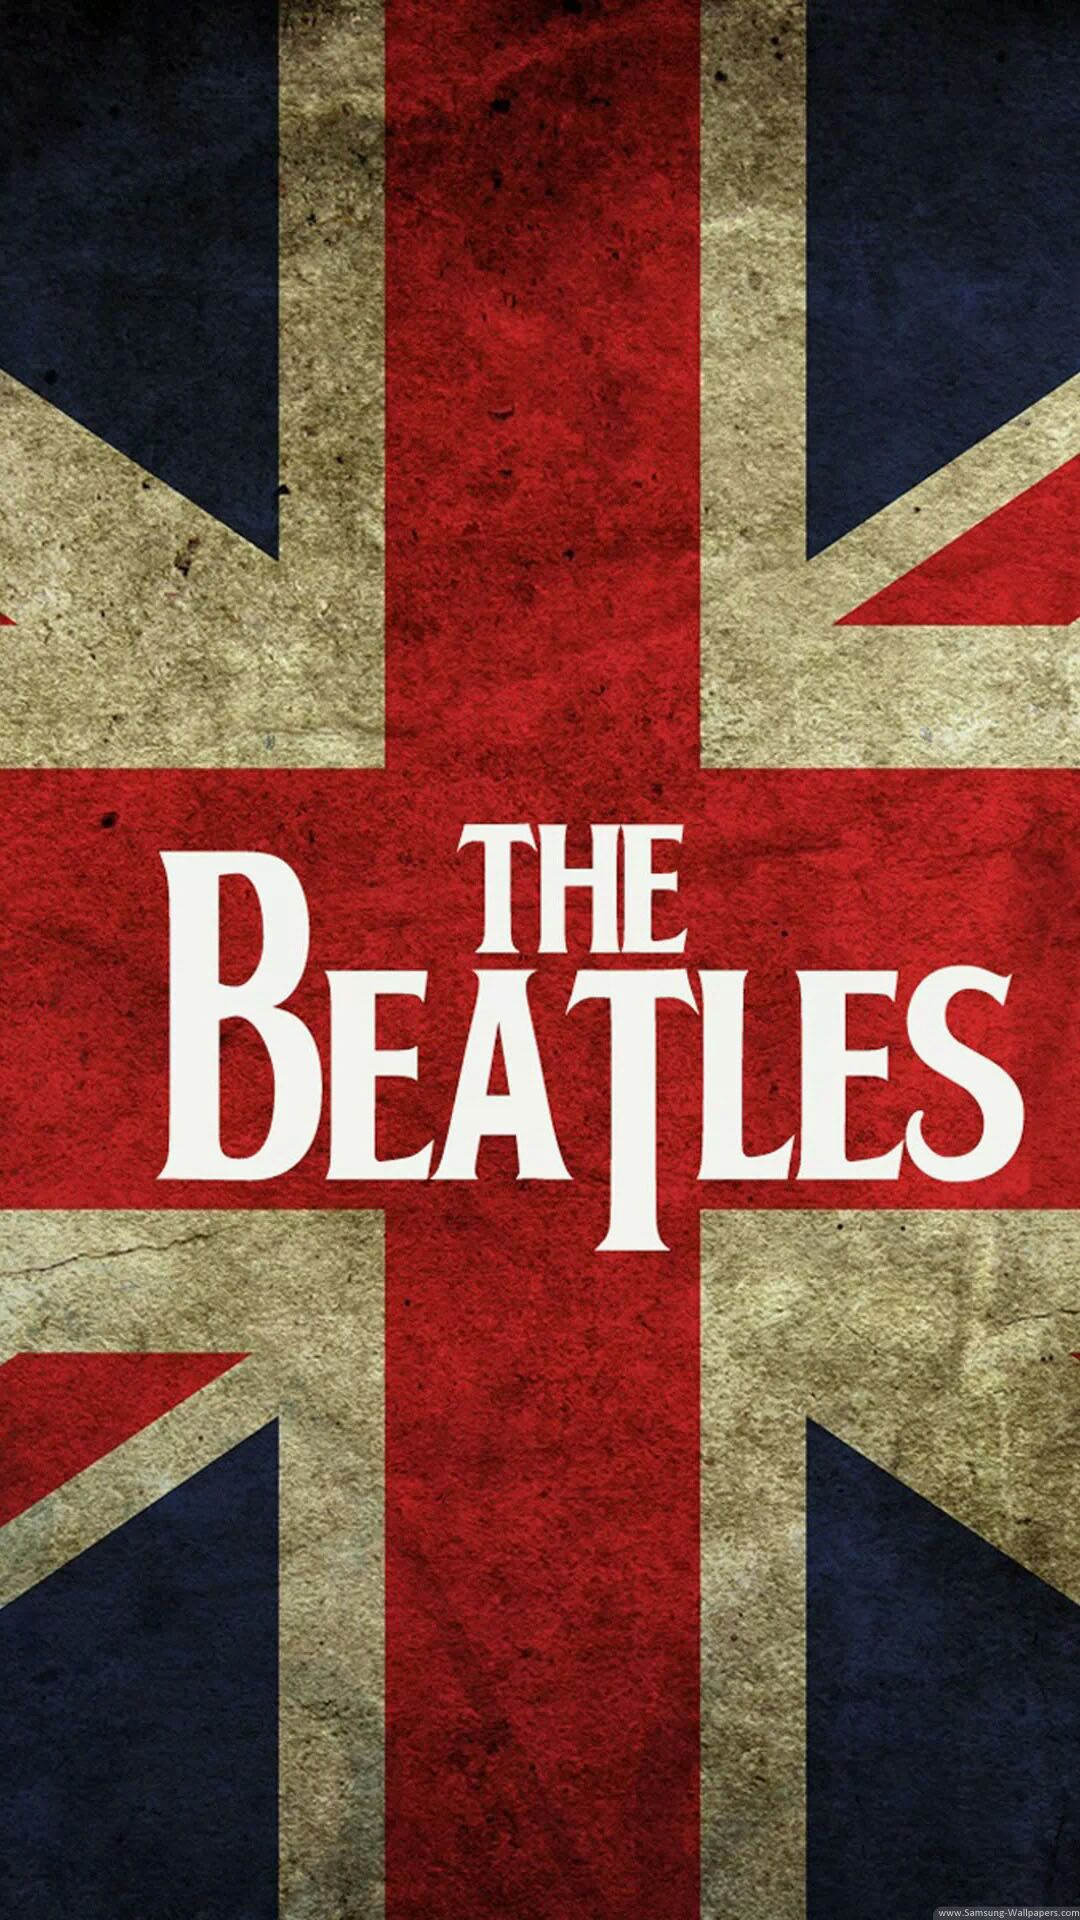 Mac IMac The Beatles Wallpapers HD Desktop Backgrounds X